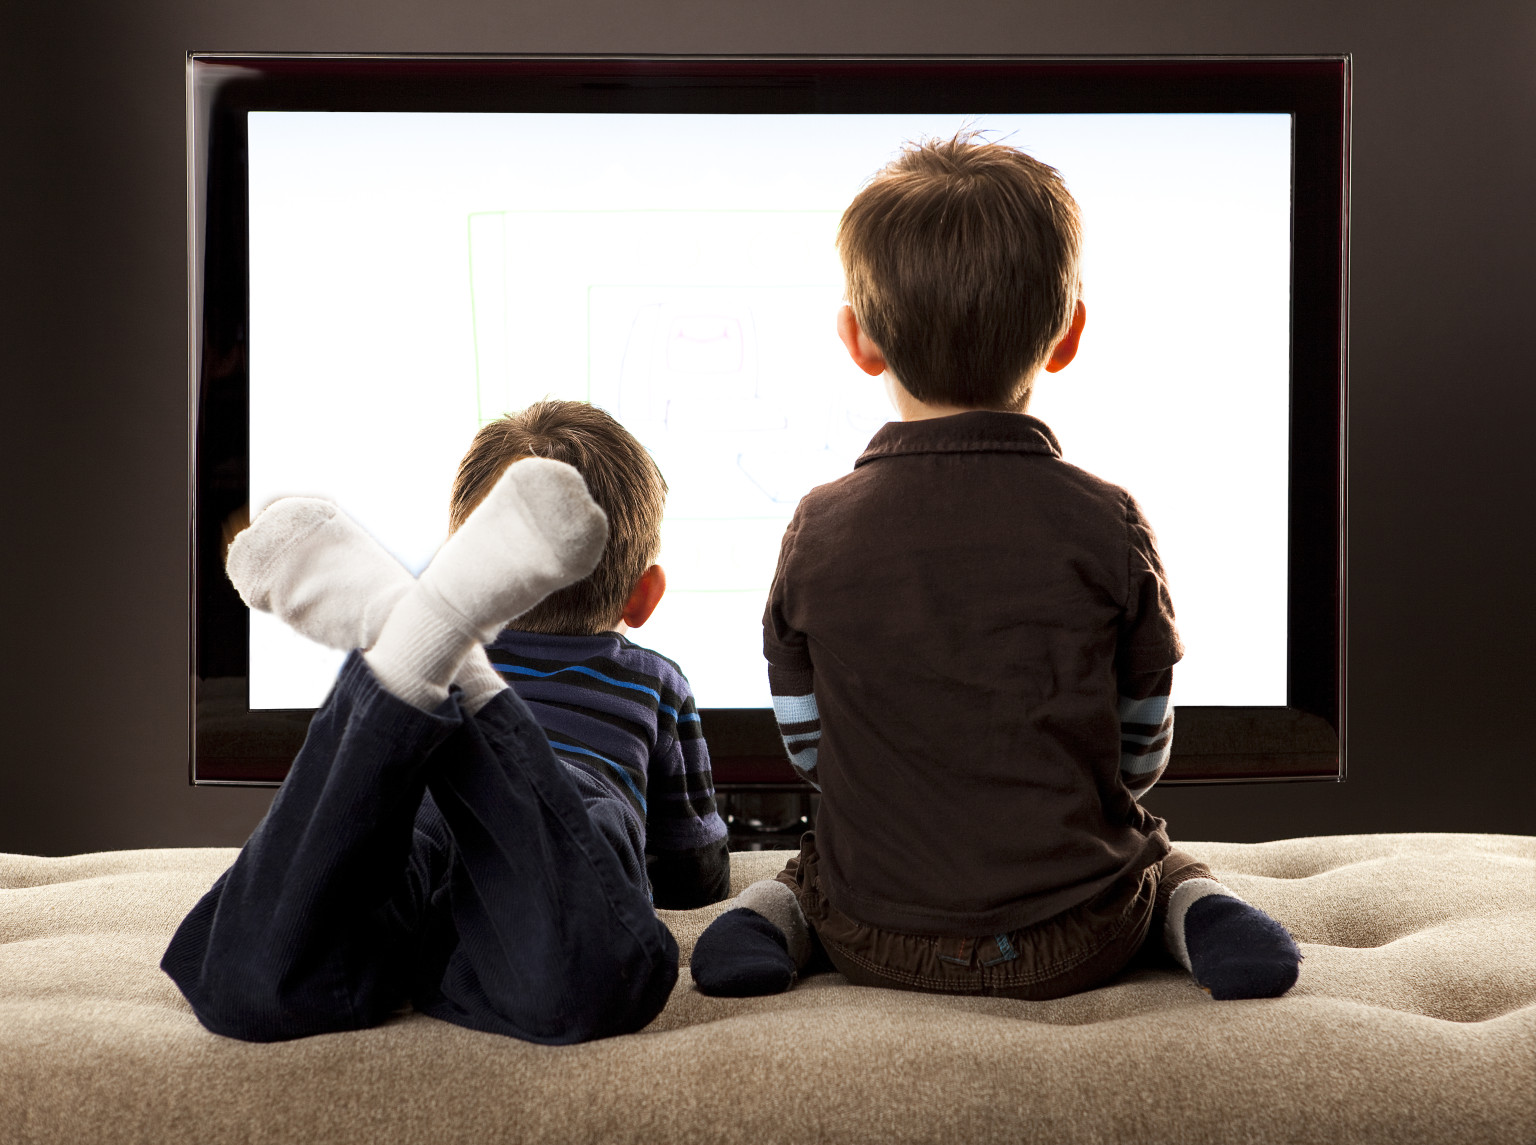 television essay for kids  · parents believe watching television is good for children the majority of parents believe that watching television is good for children, according to a.